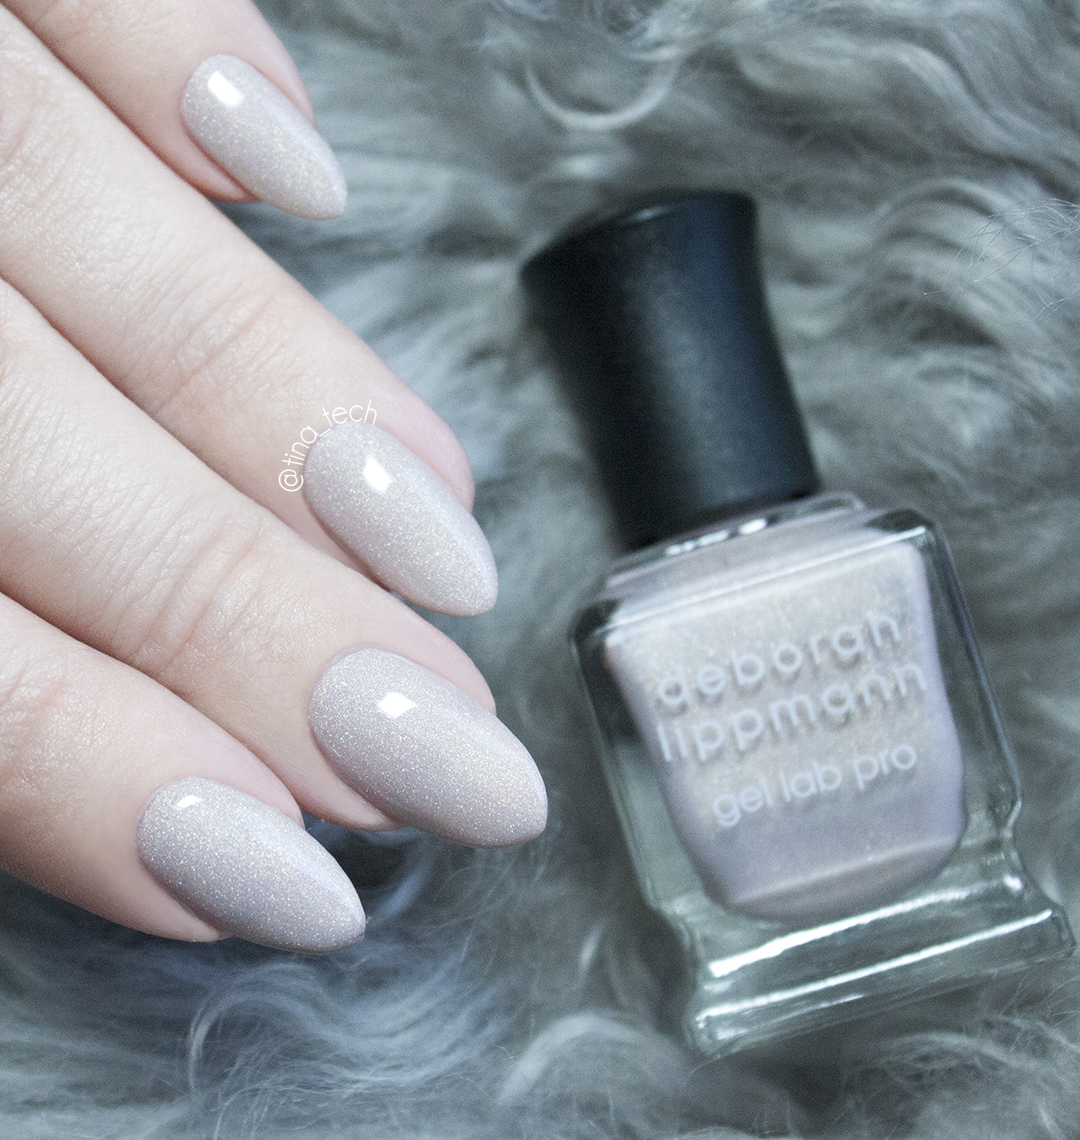 Deborah Lippmann - Dirty Little Secret